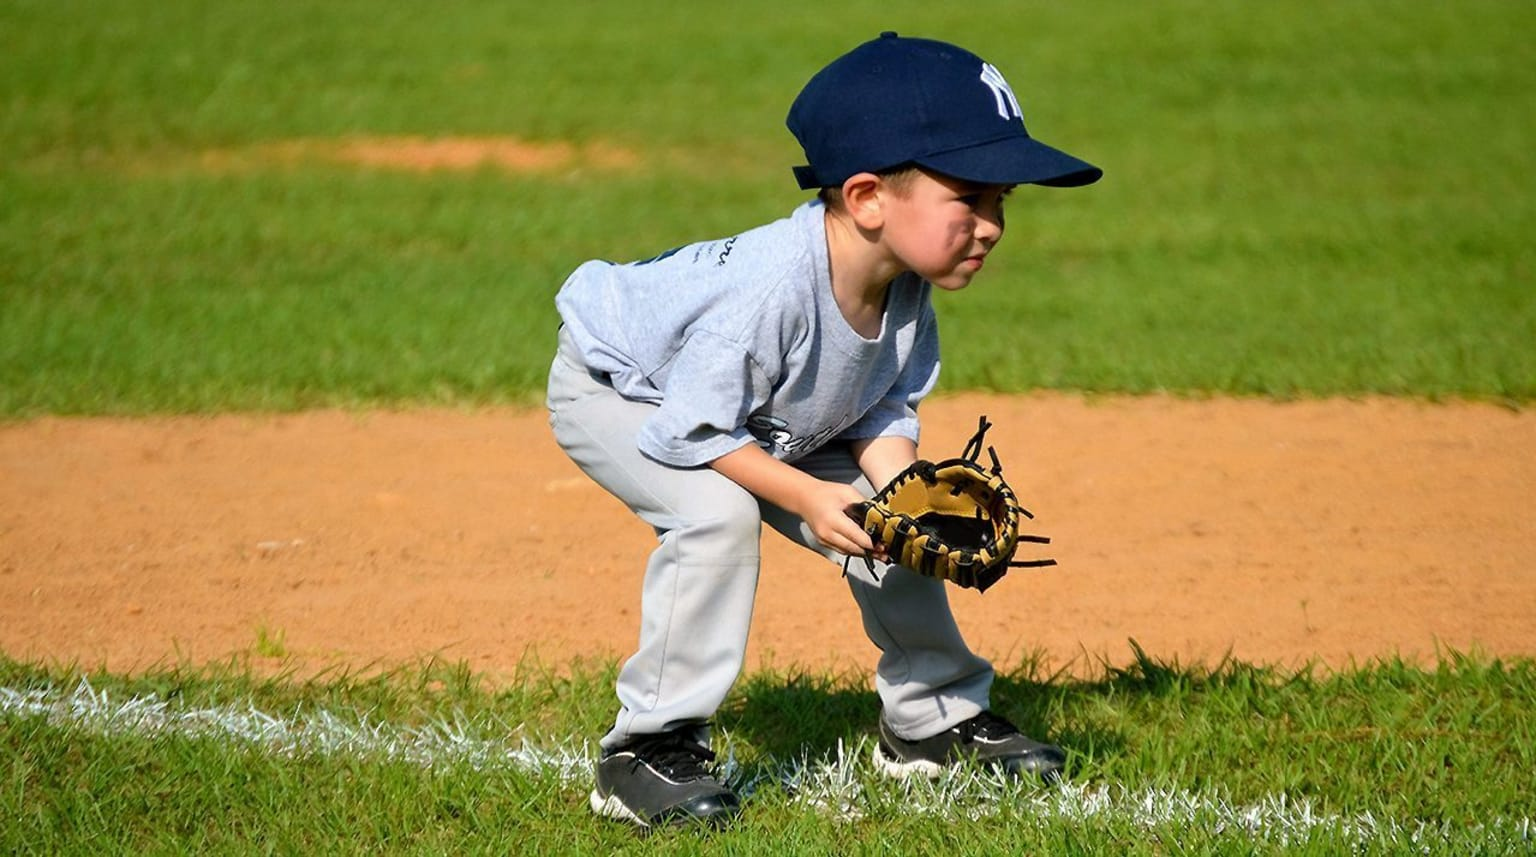 tee-ball-quick-start-quide-player-outfield (JPG)